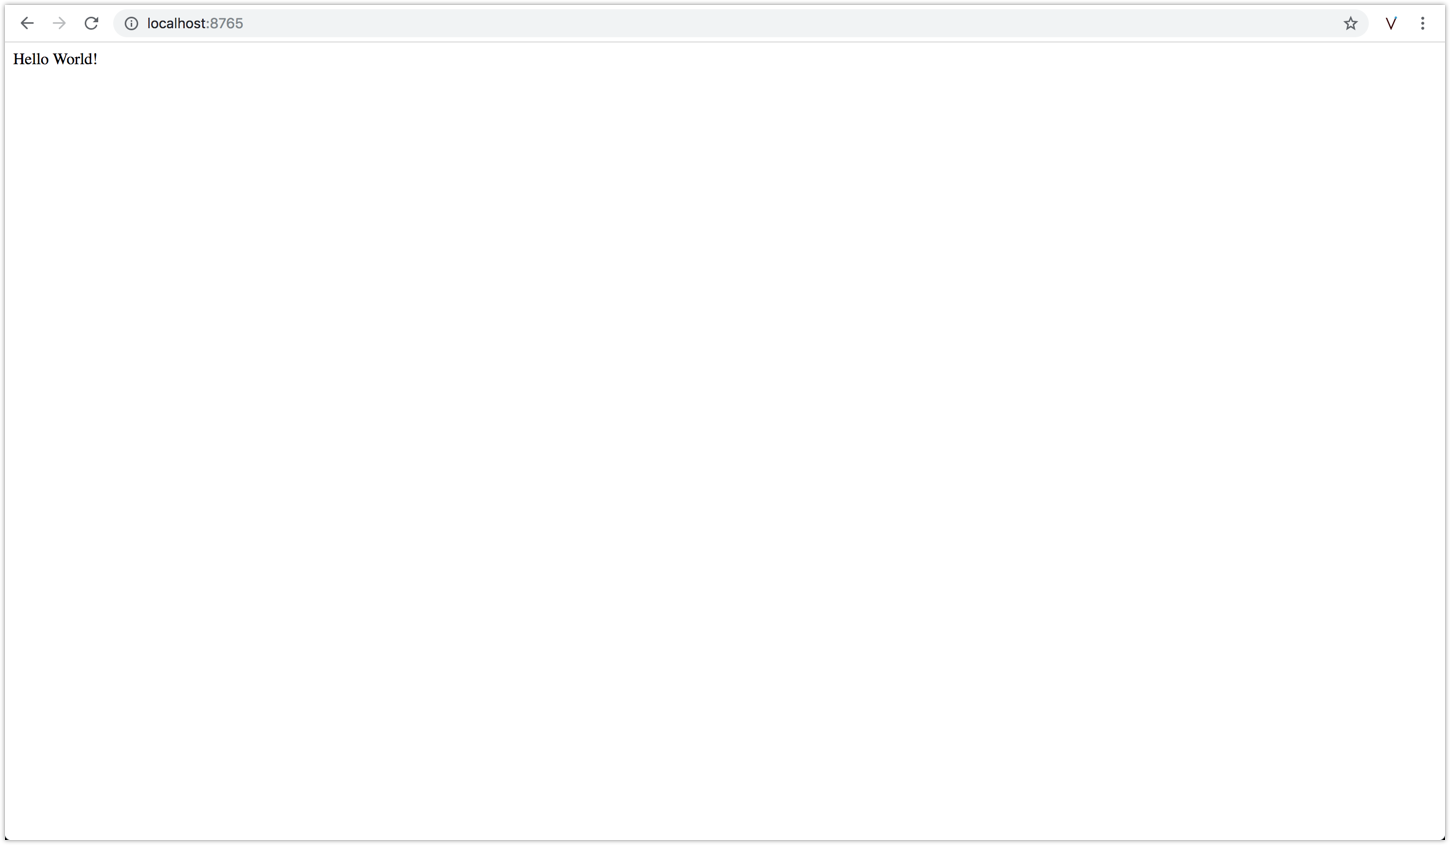 Hello World! in Browser